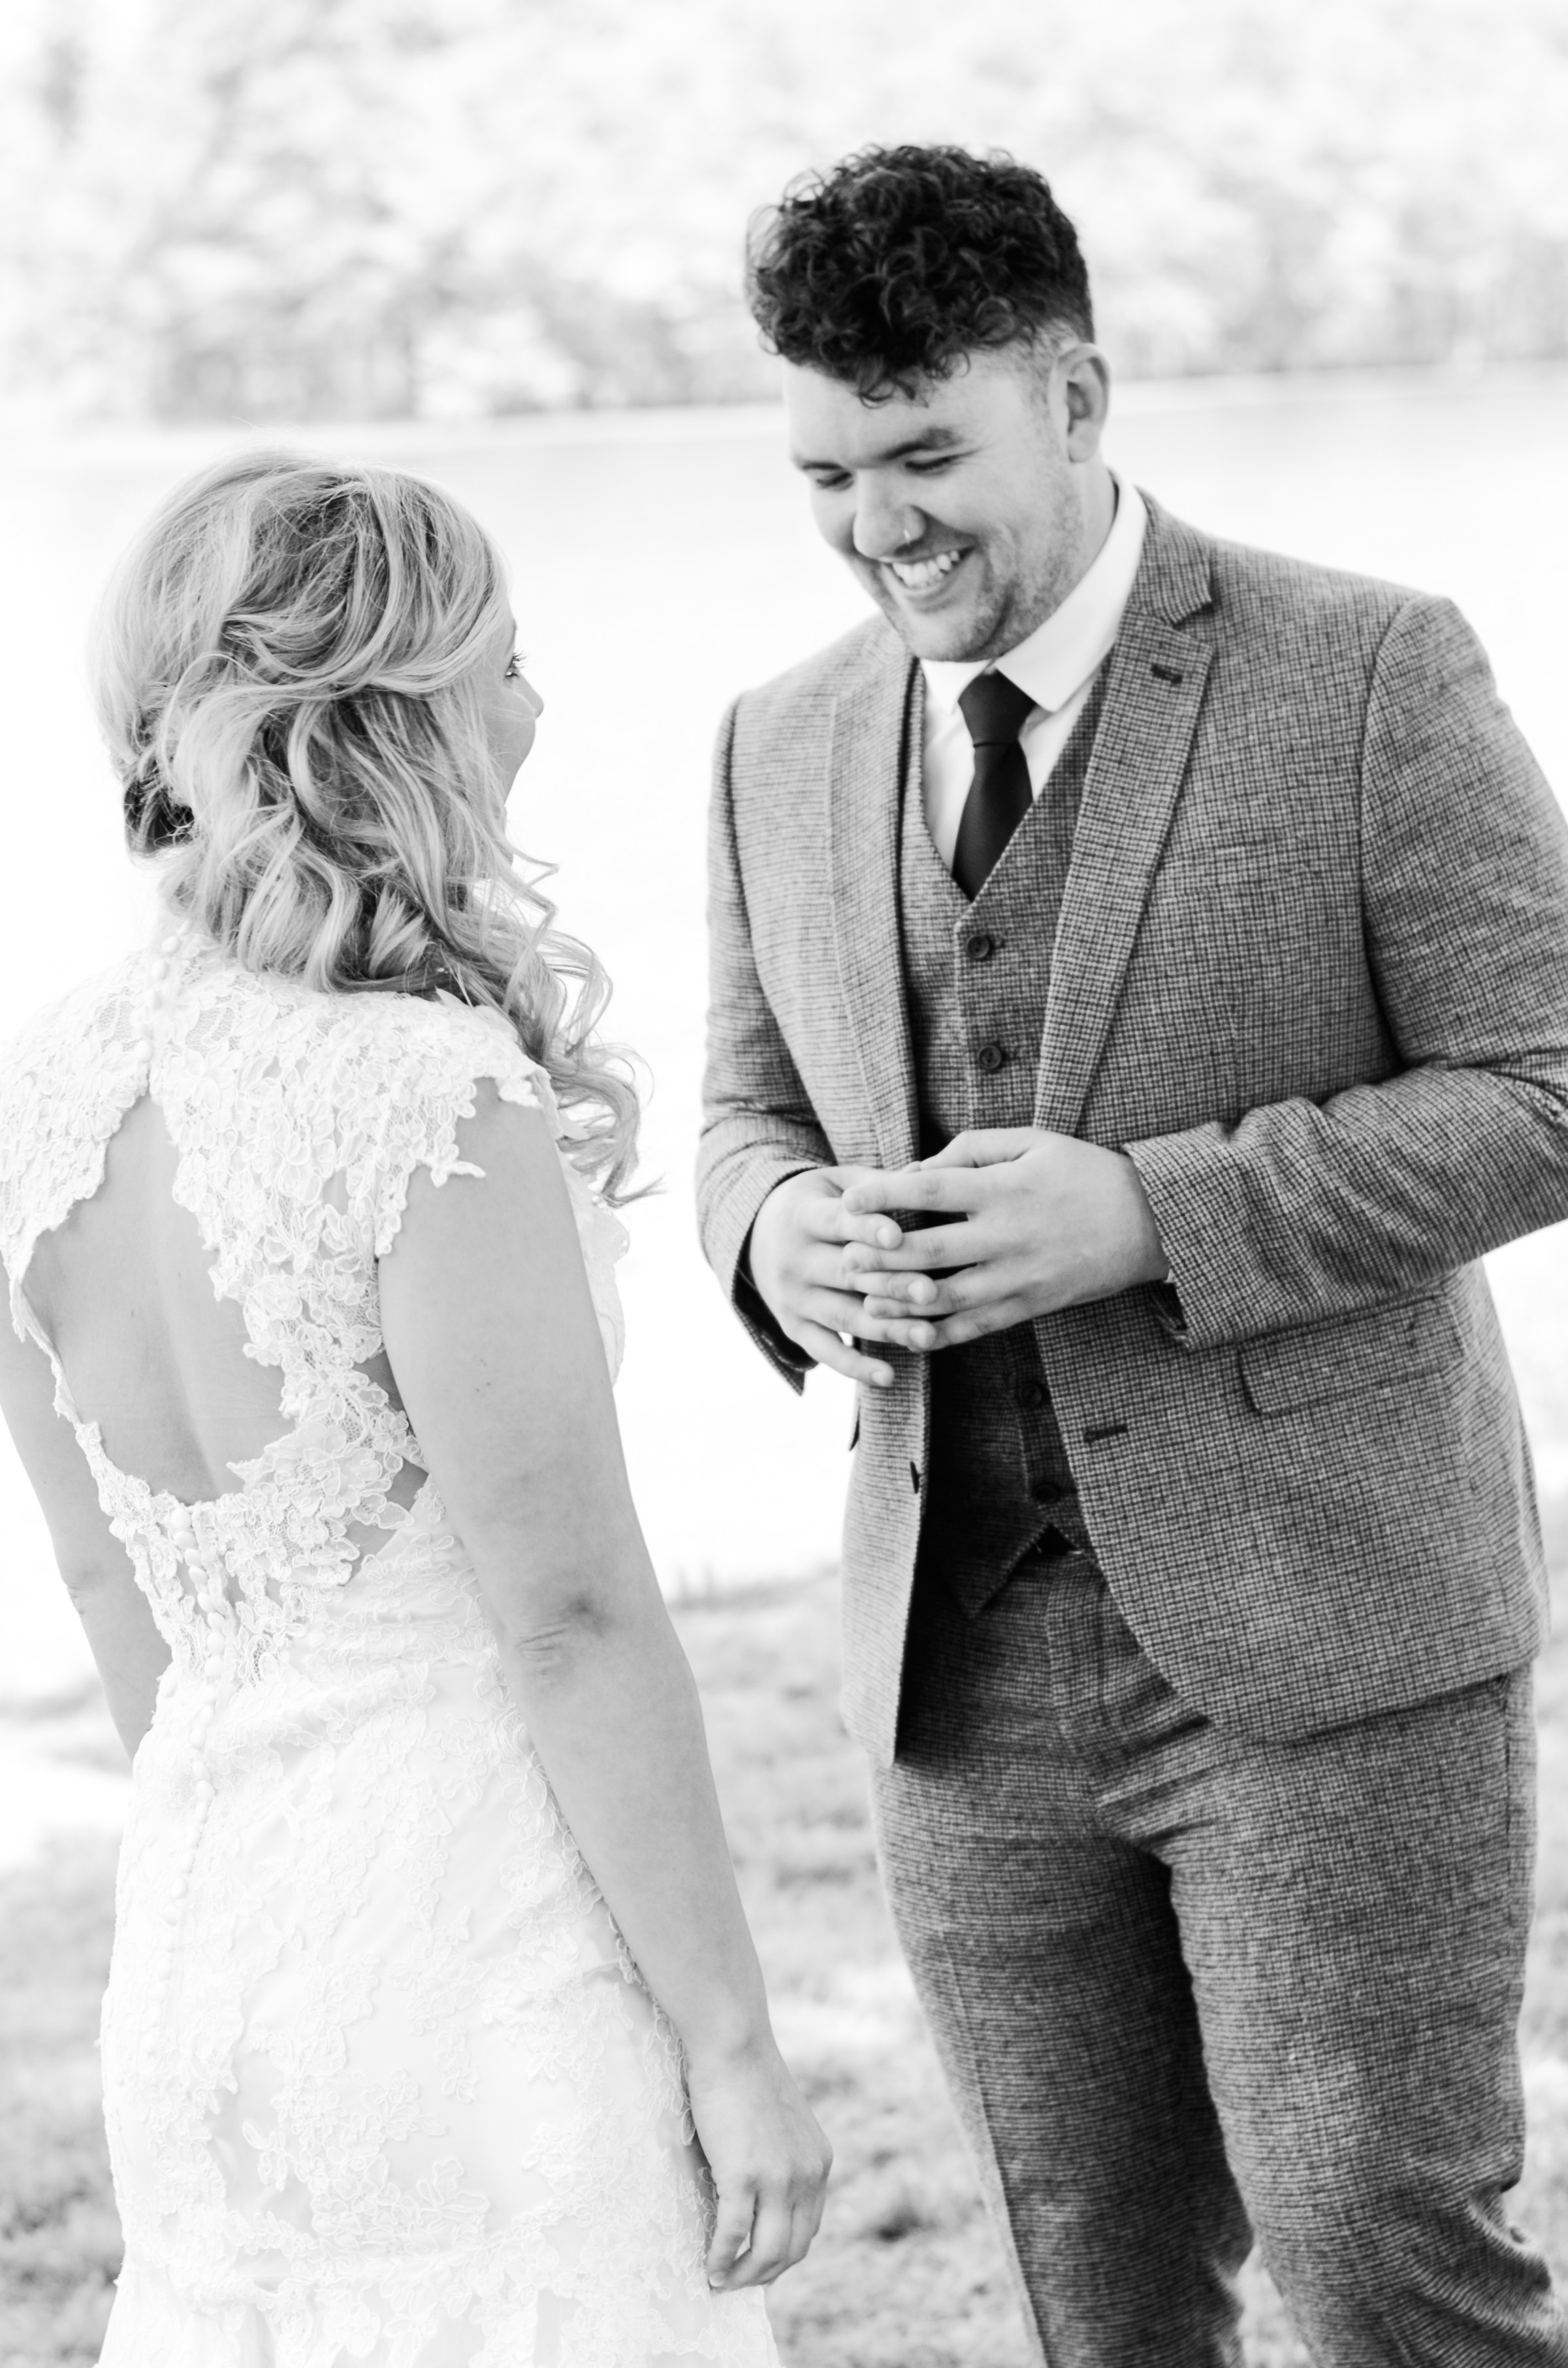 Loving this moment!  And Anna is rocking that side-swept hairstyle to show off her key hole back on that lace dress.